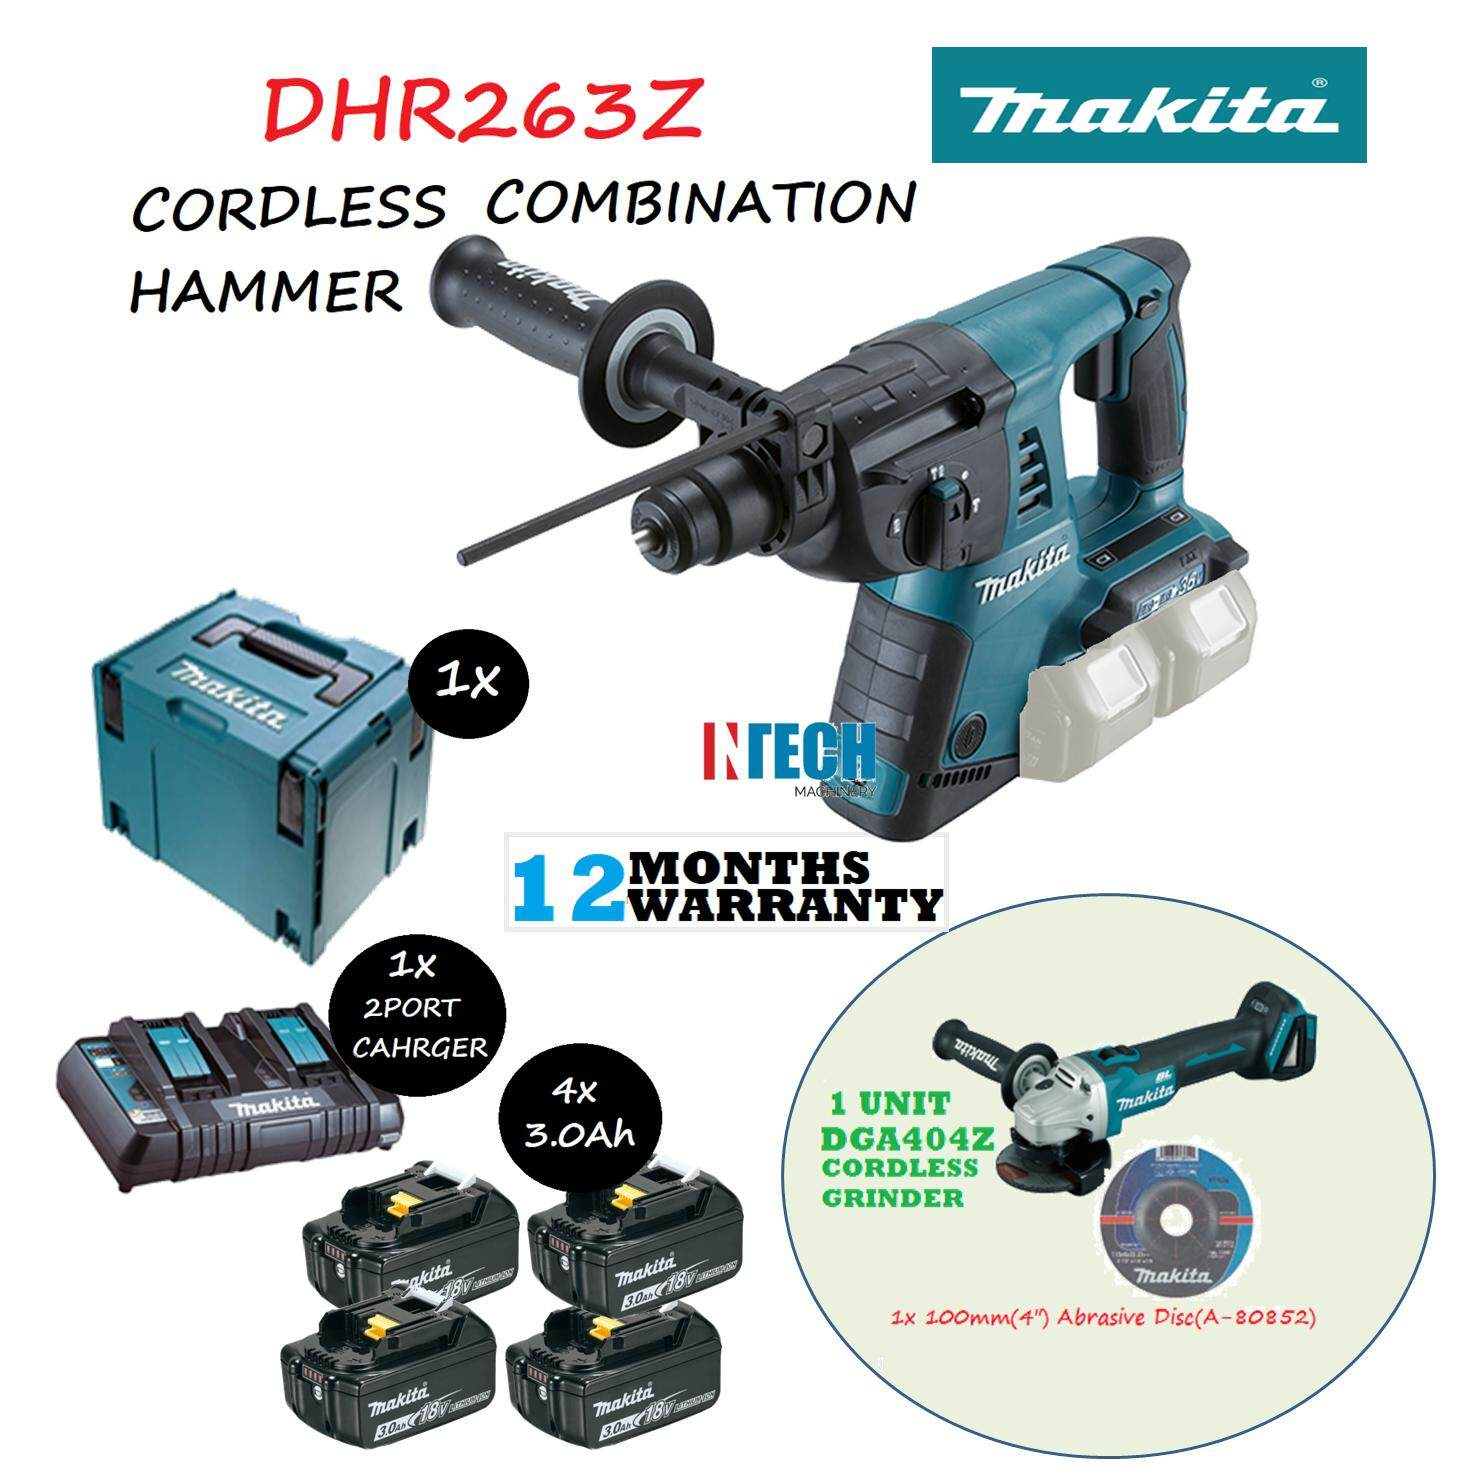 MAKITA DHR263Z CORDLESS COMBINATION HAMMER C/W 4x3.0AH BATTERY+1x2PORT MULTI FAST CHARGER+MAKPAC CONNECTOR CASE